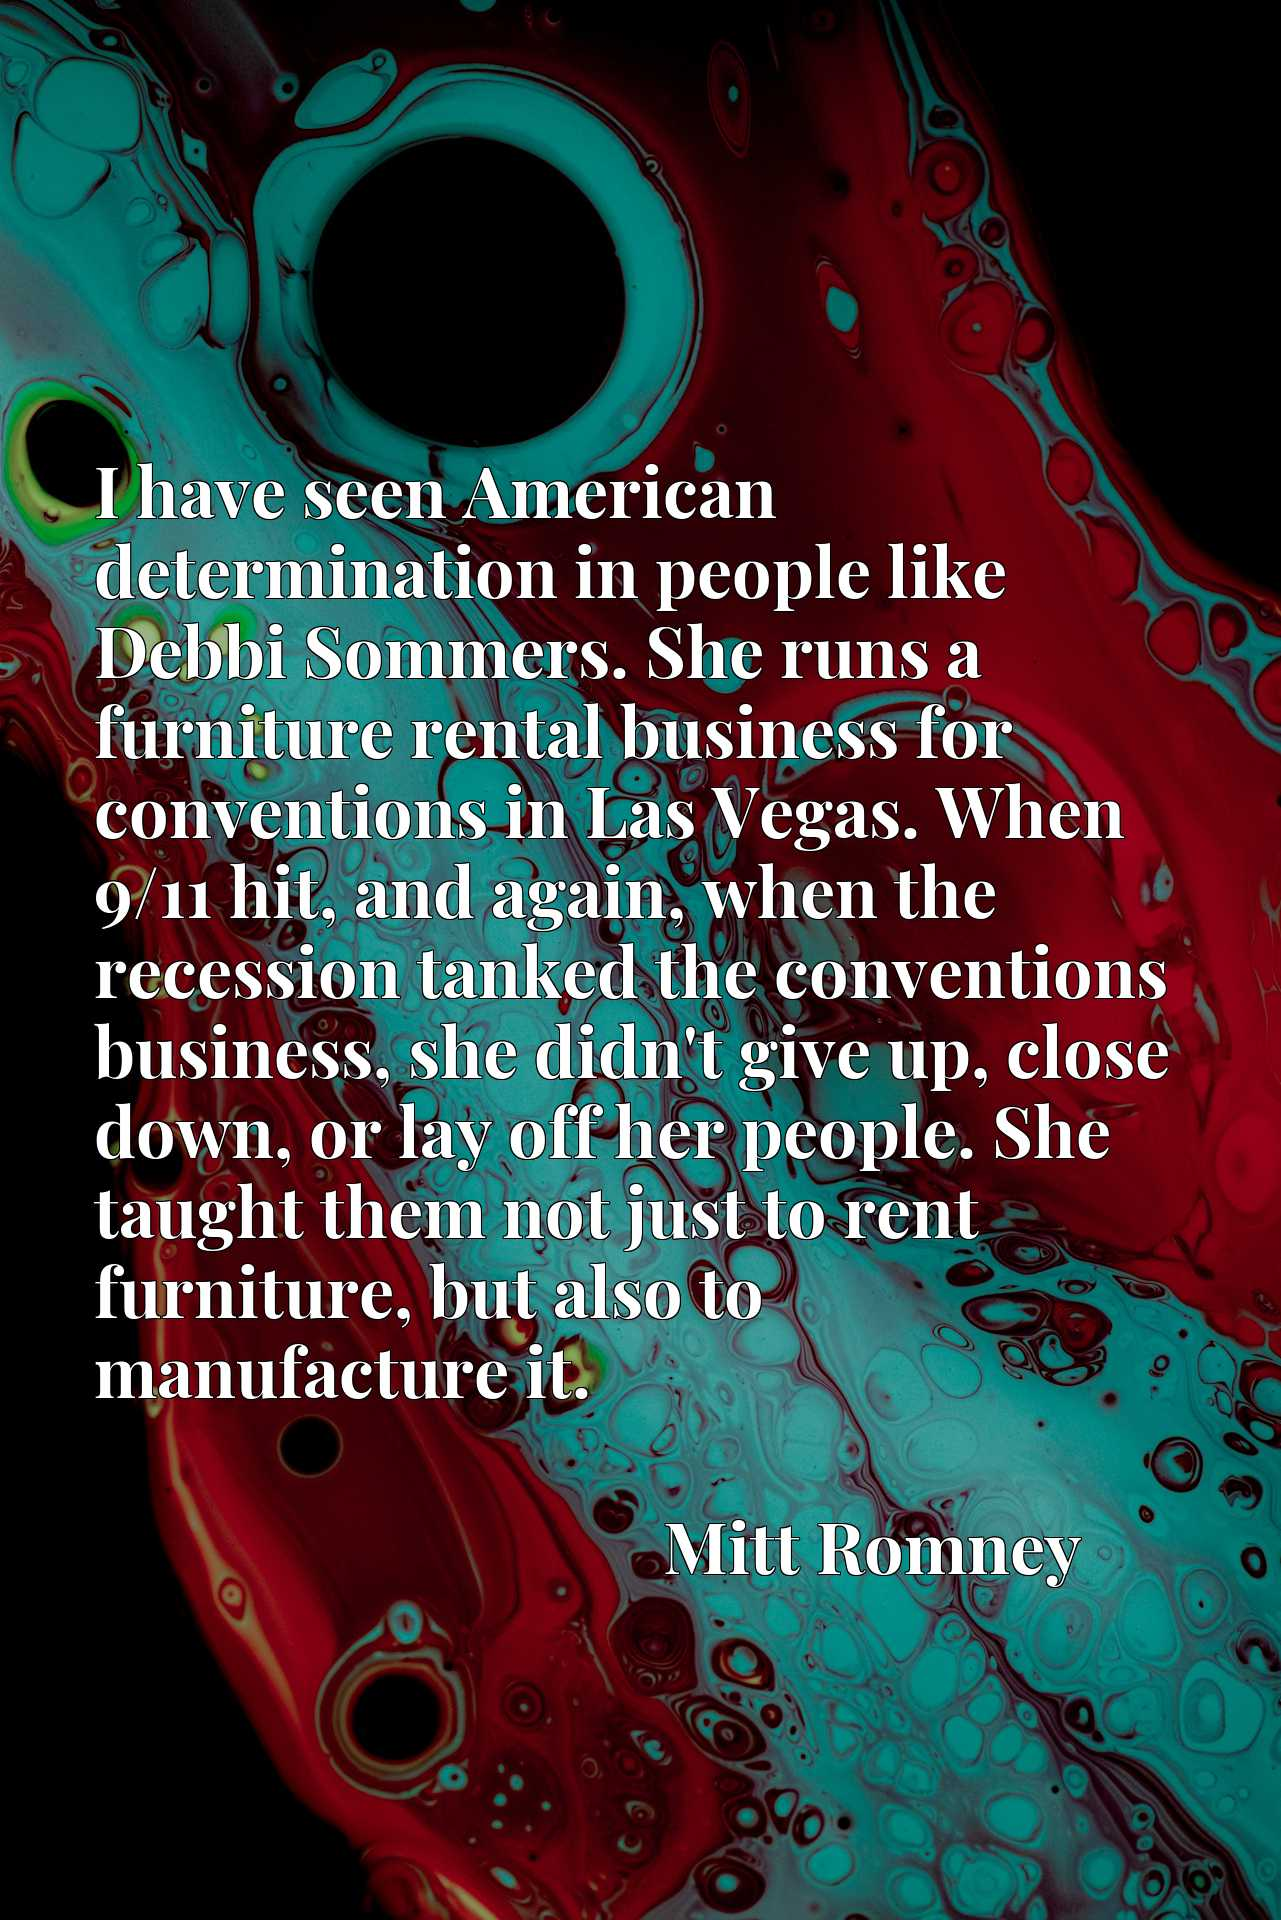 I have seen American determination in people like Debbi Sommers. She runs a furniture rental business for conventions in Las Vegas. When 9/11 hit, and again, when the recession tanked the conventions business, she didn't give up, close down, or lay off her people. She taught them not just to rent furniture, but also to manufacture it.